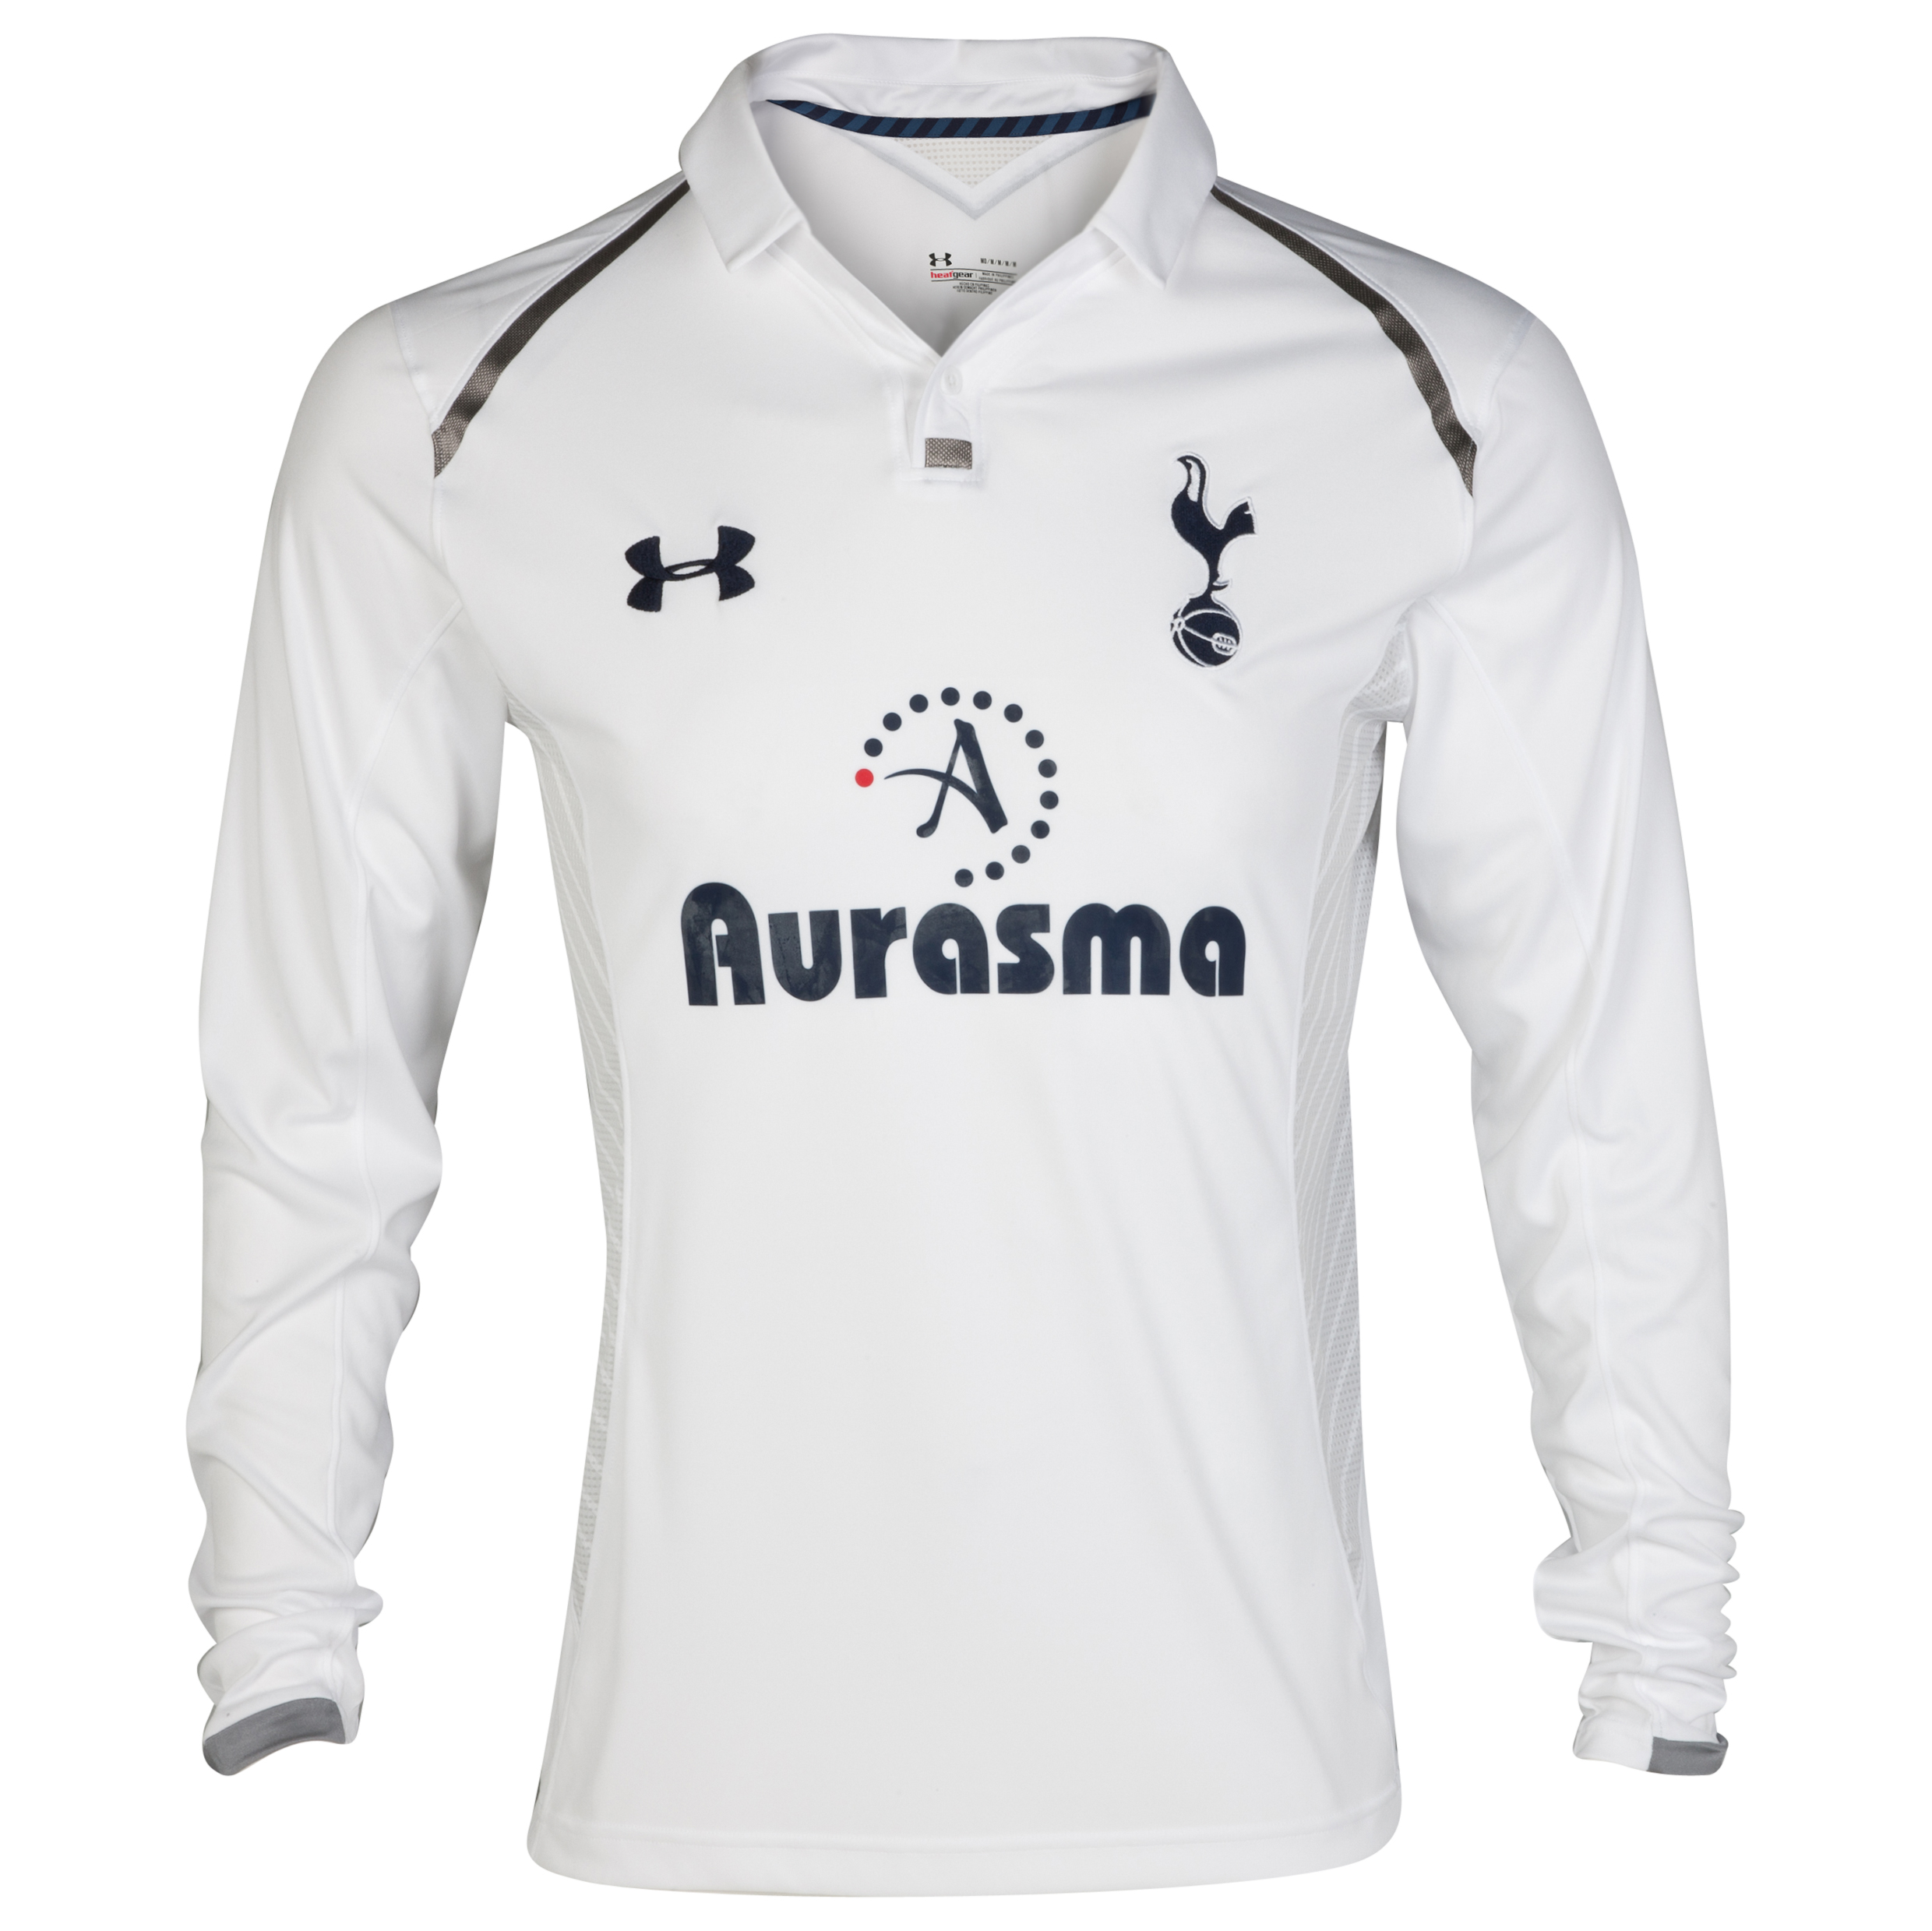 Tottenham Hotspur Home Shirt 2012/13 - Long Sleeve